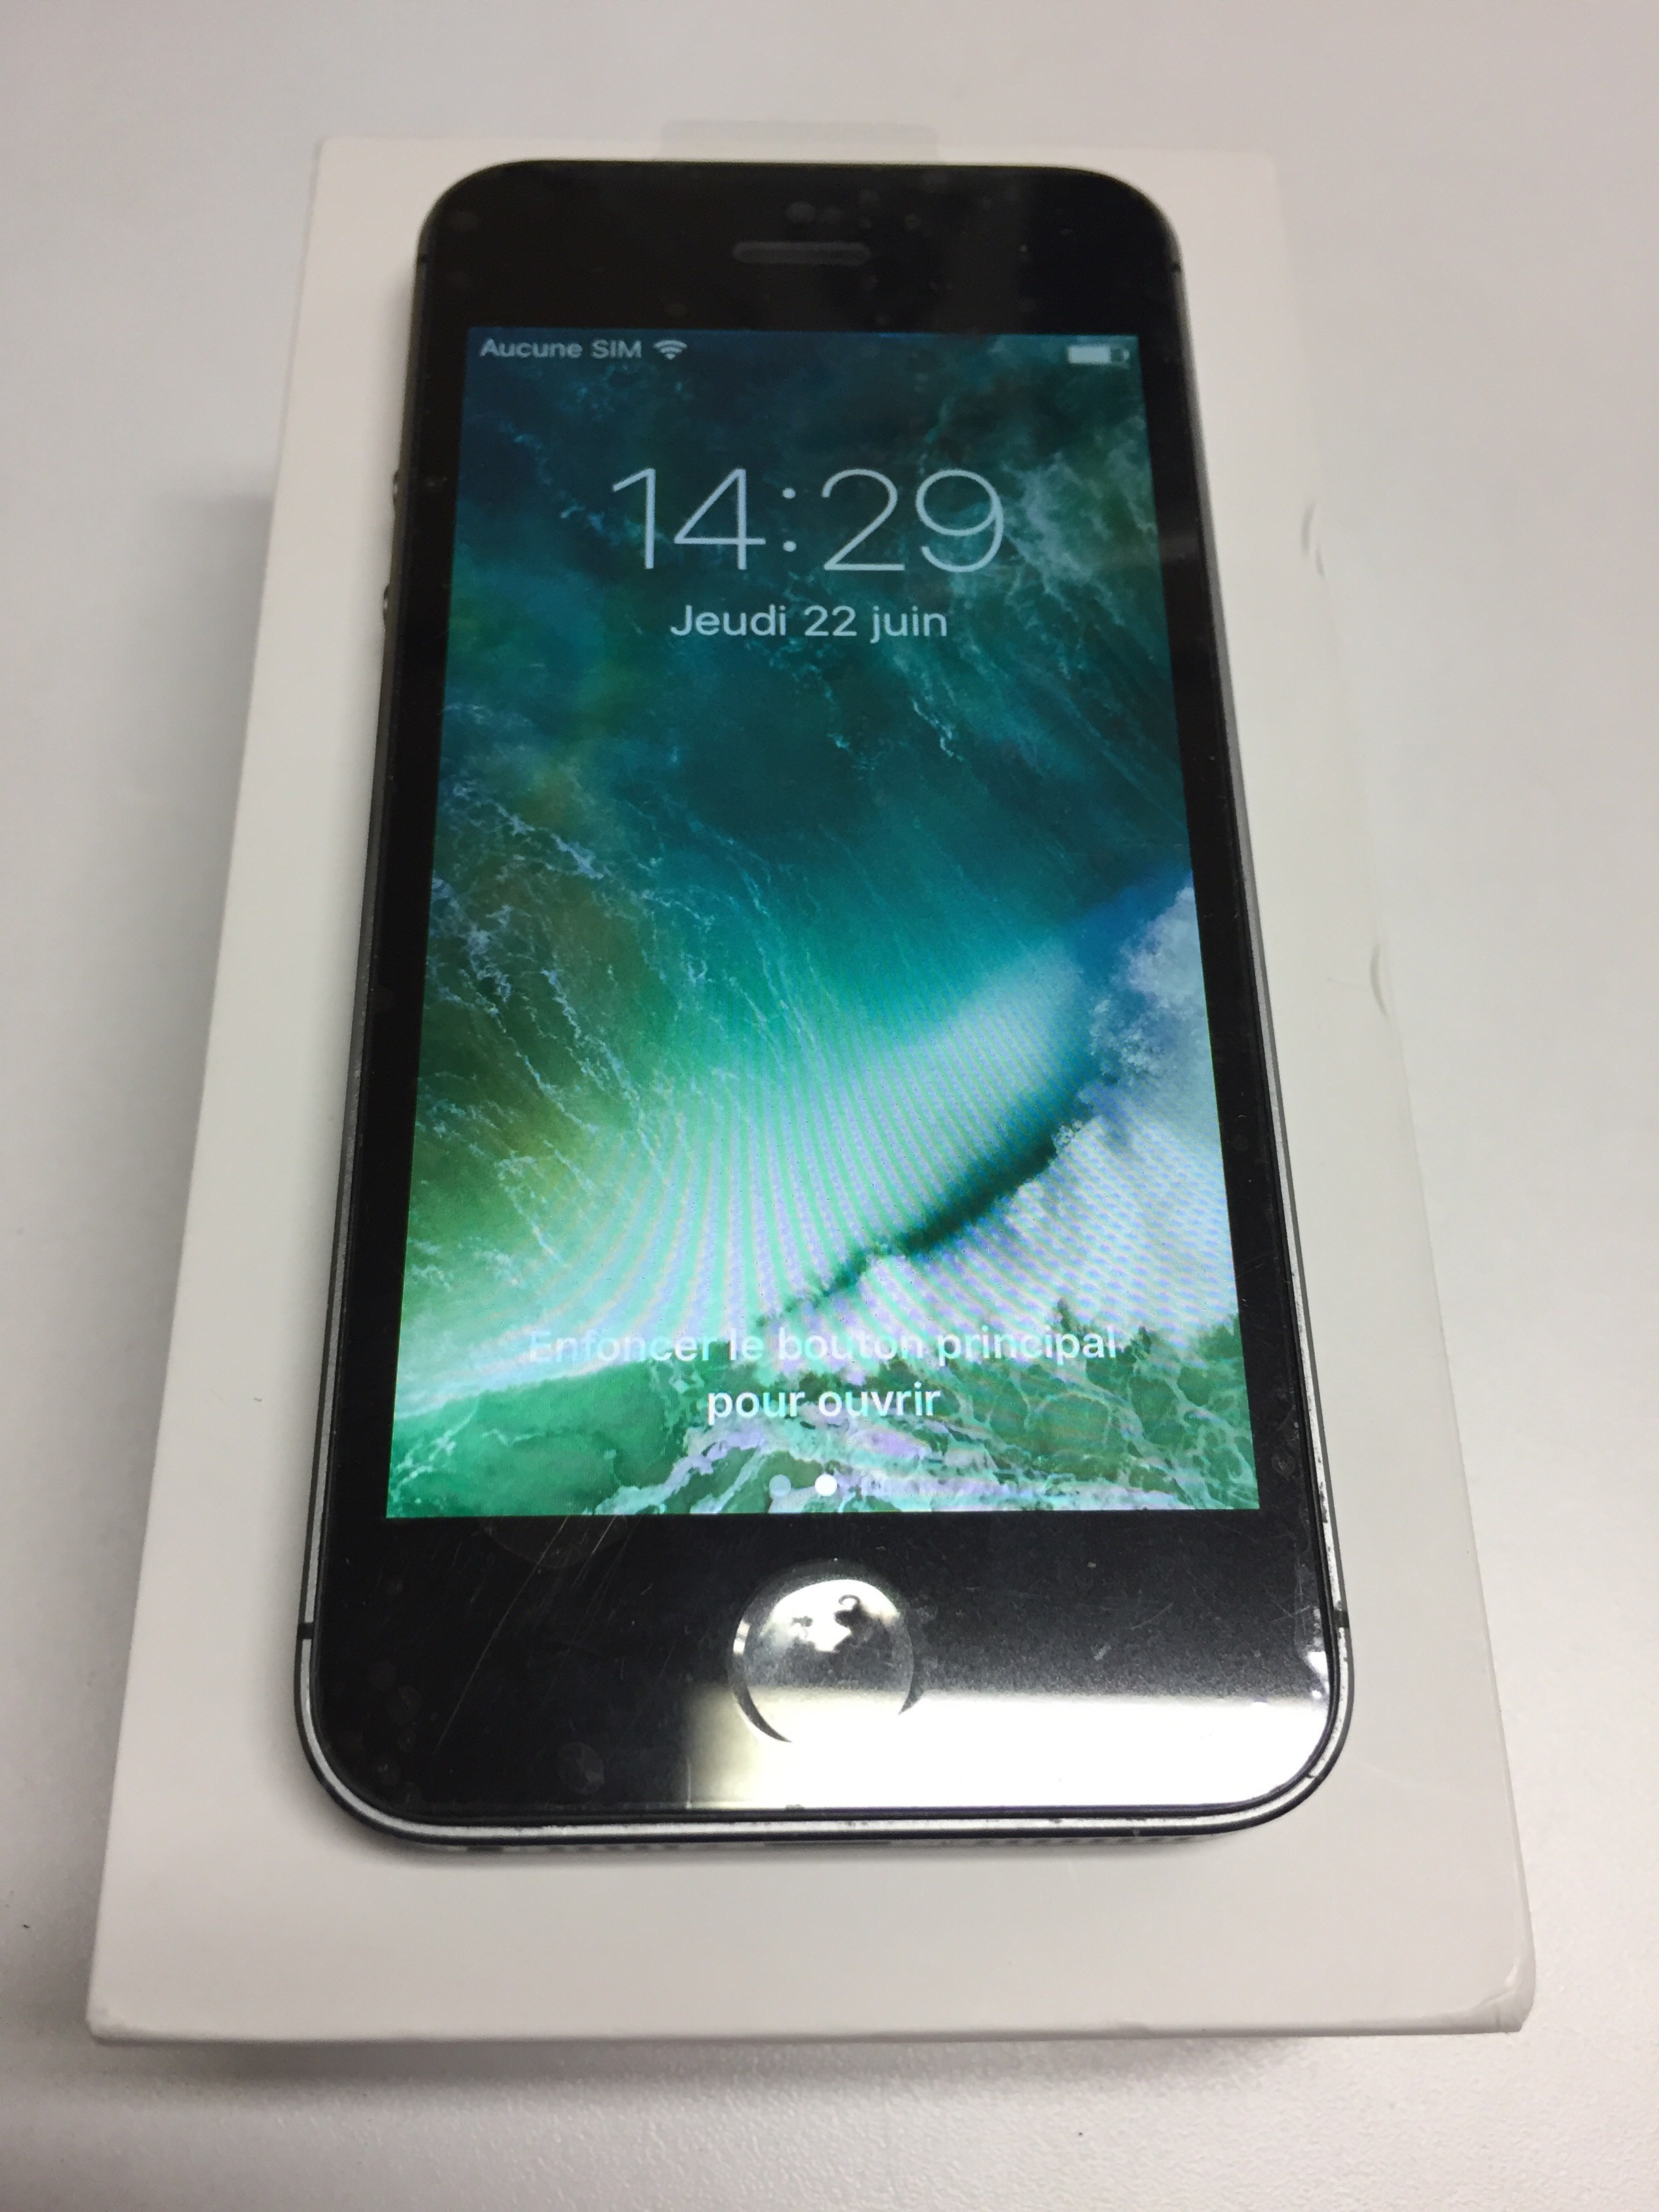 iPhone 5s - usagé - deverrouillé / unlock - 16 gb